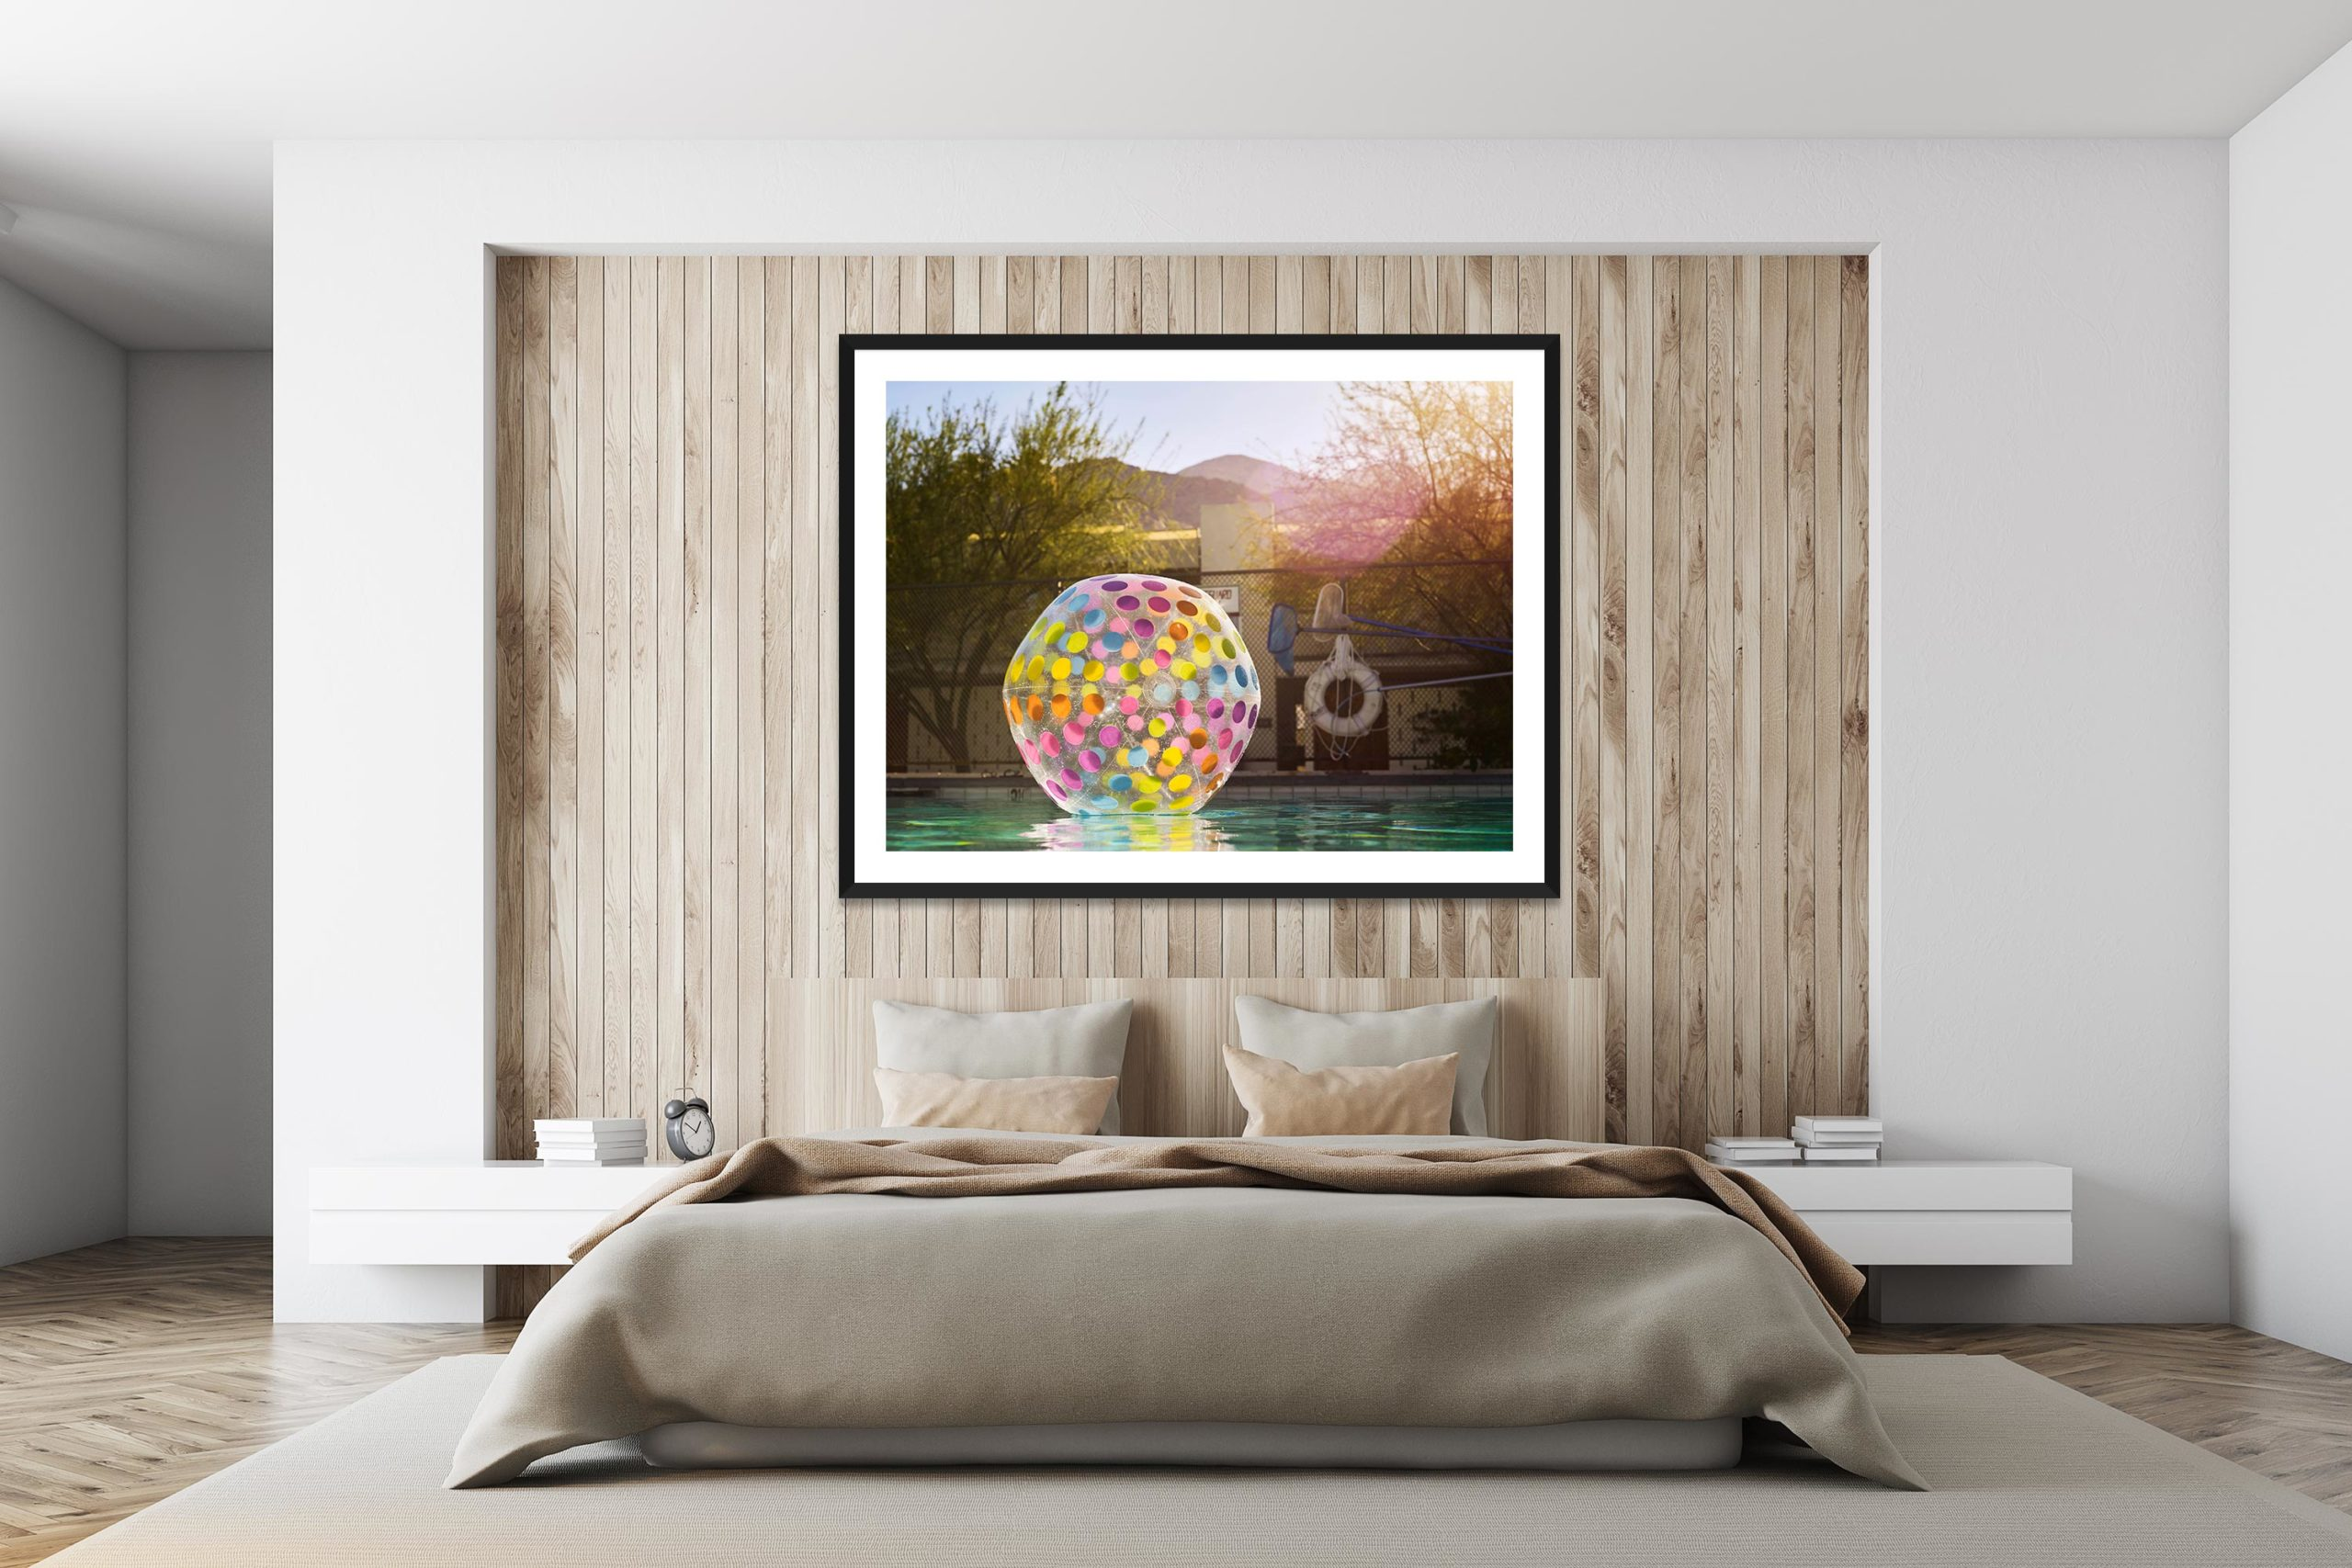 Apres Apres - Black Frame - I Heart Palm Springs Collection - Fine Art Photography by Toby Dixon